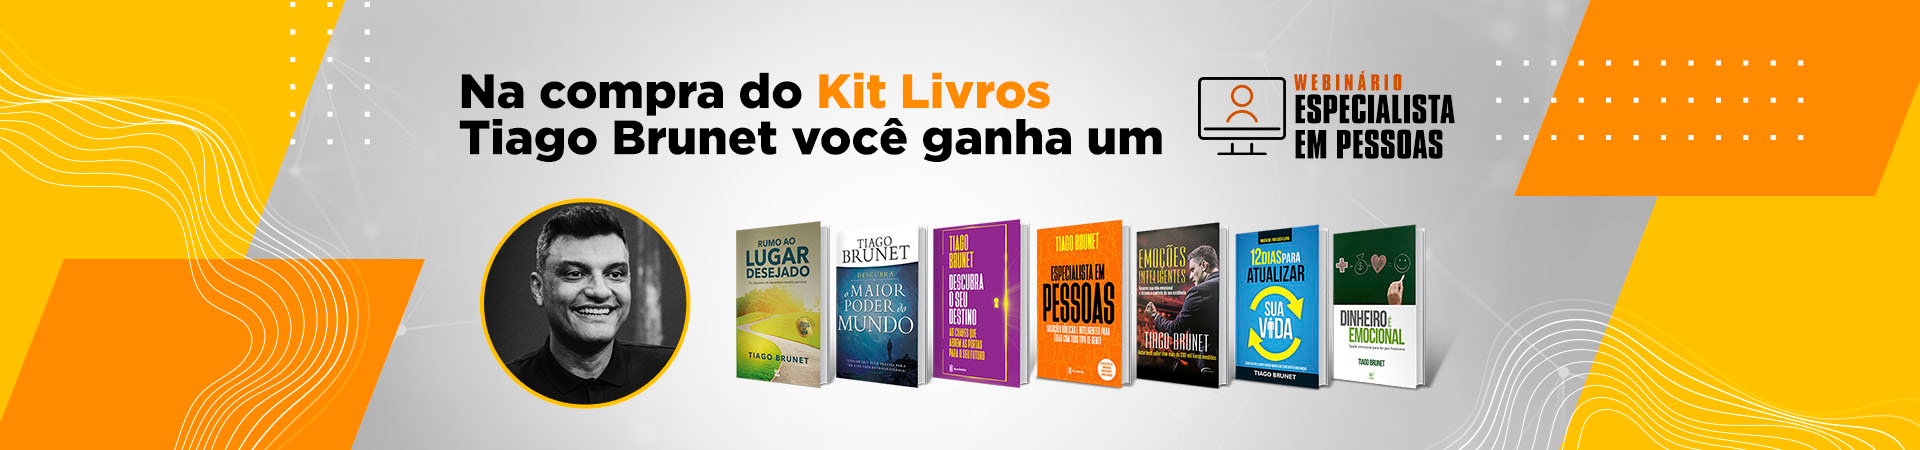 banners-site2020banner-ca-compra-do-kit-tiago